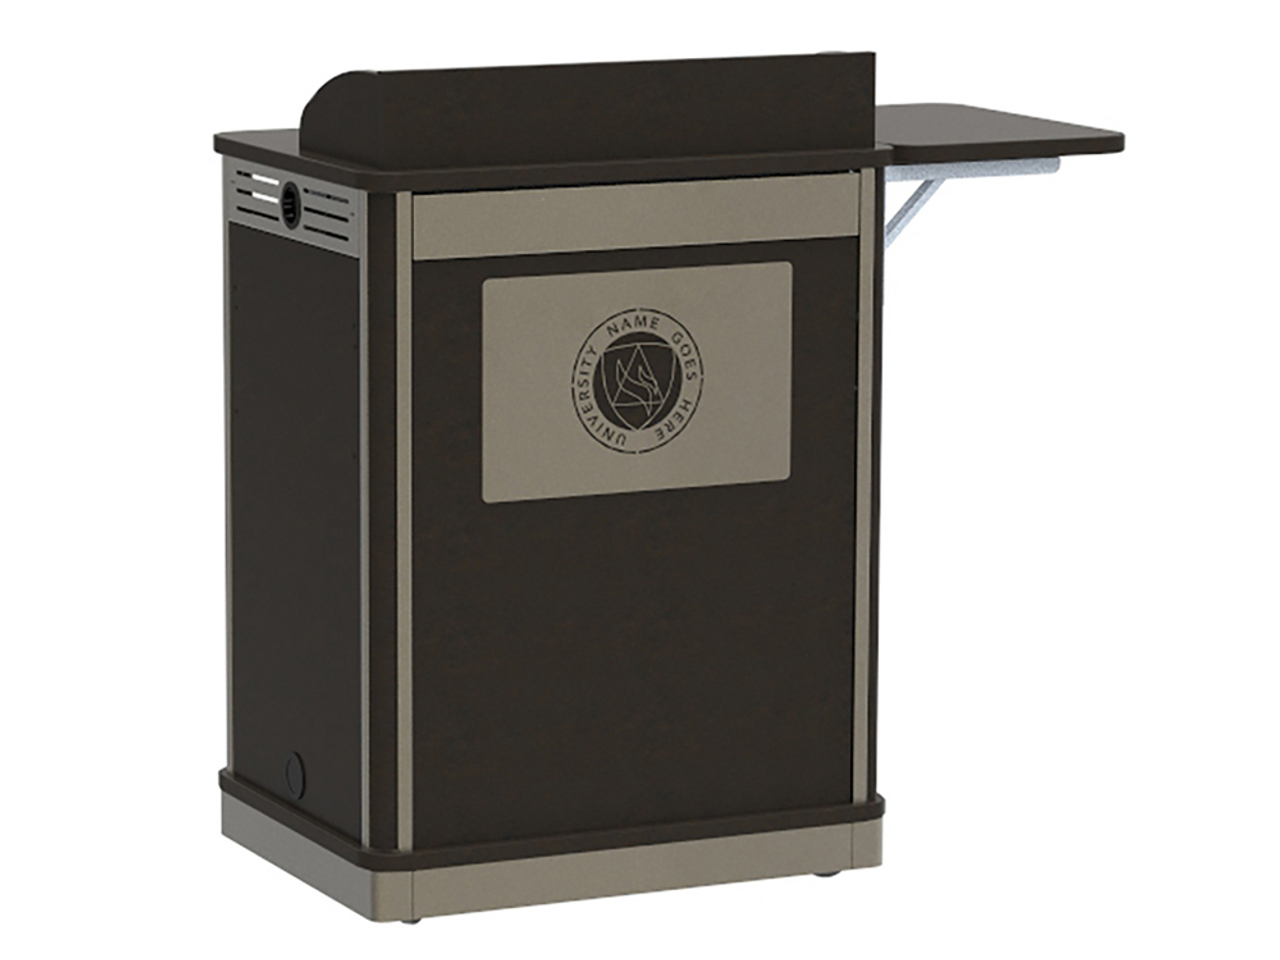 Spectrum Compact Lectern - Media Manager Series (55212)